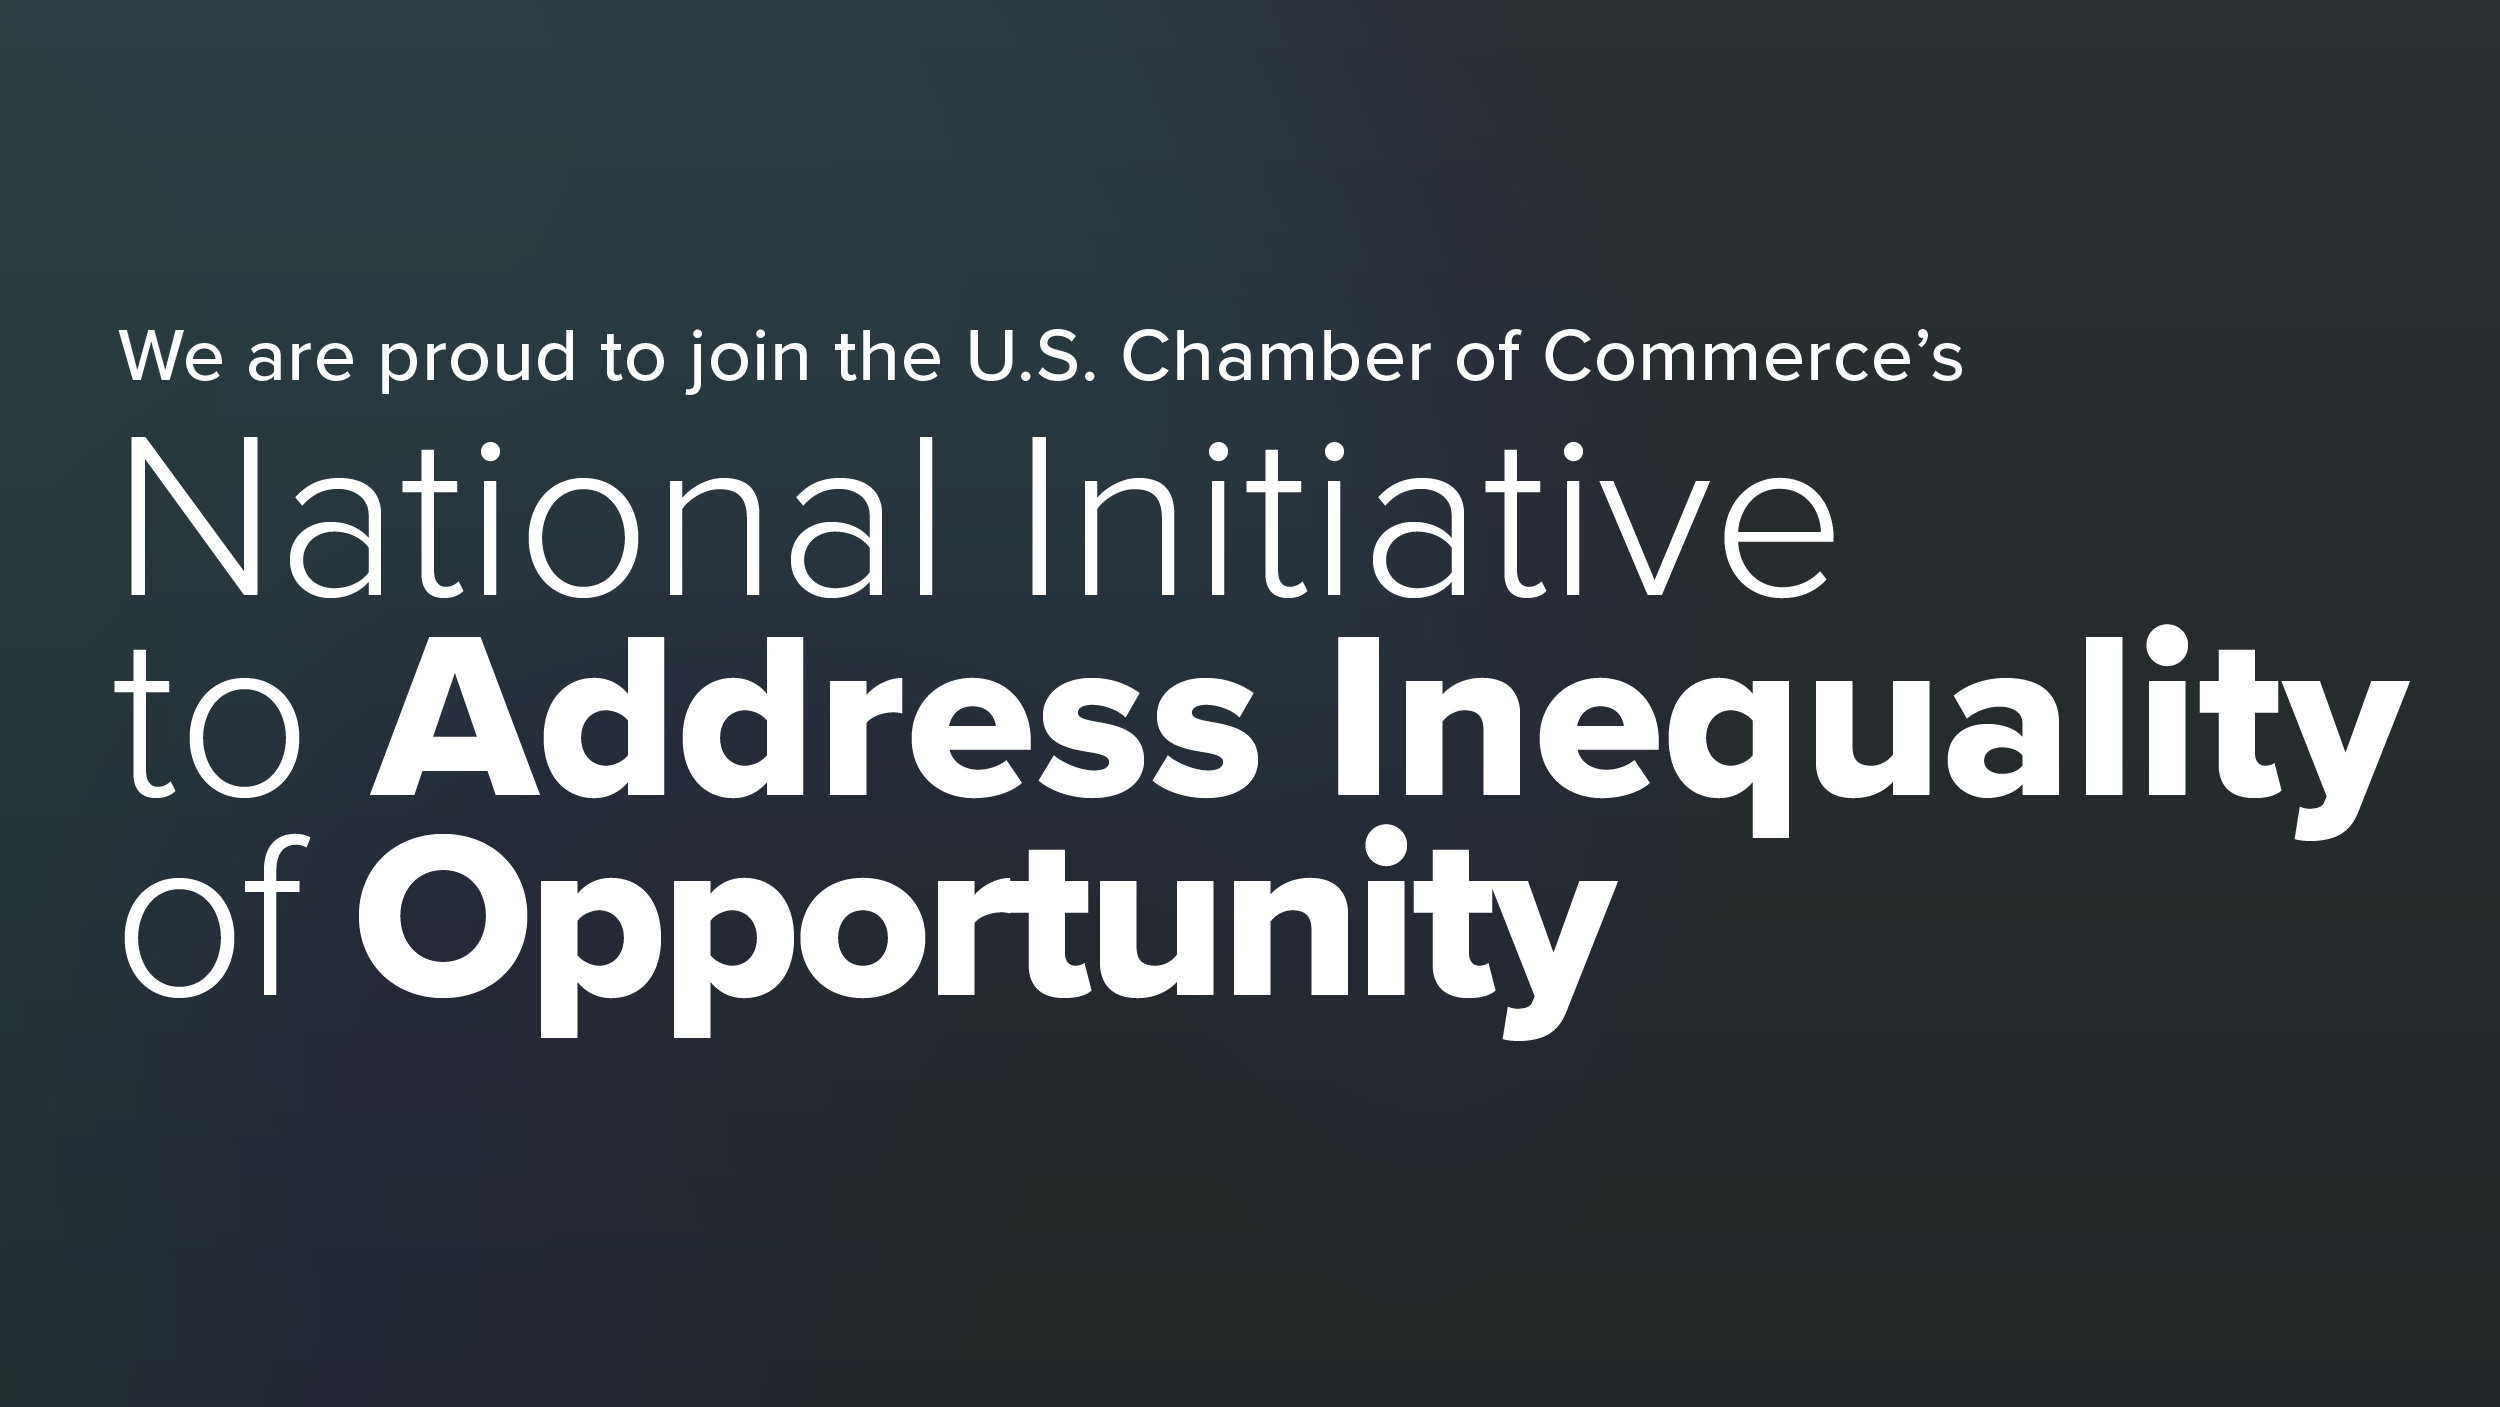 The Brentwood Chamber of Commerce is Proud to Join the National Initiative to Address Inequality of Opportunity